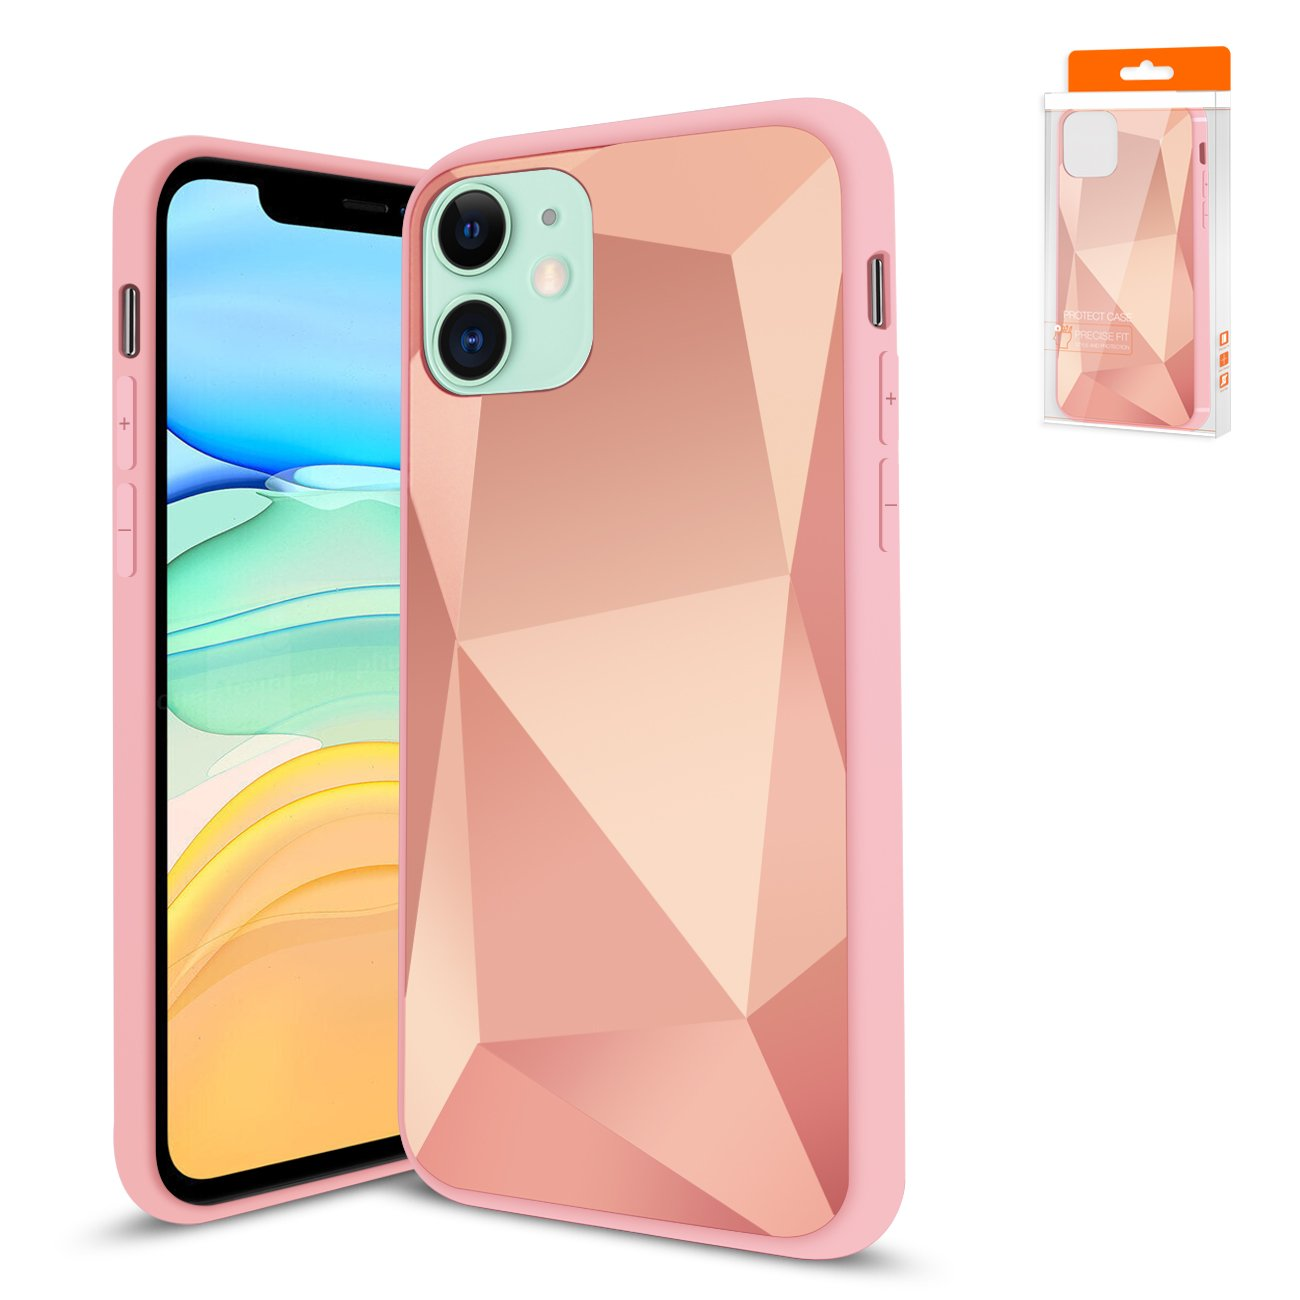 Reiko Apple iPhone 11 Apple Diamond Cases In Rose Gold